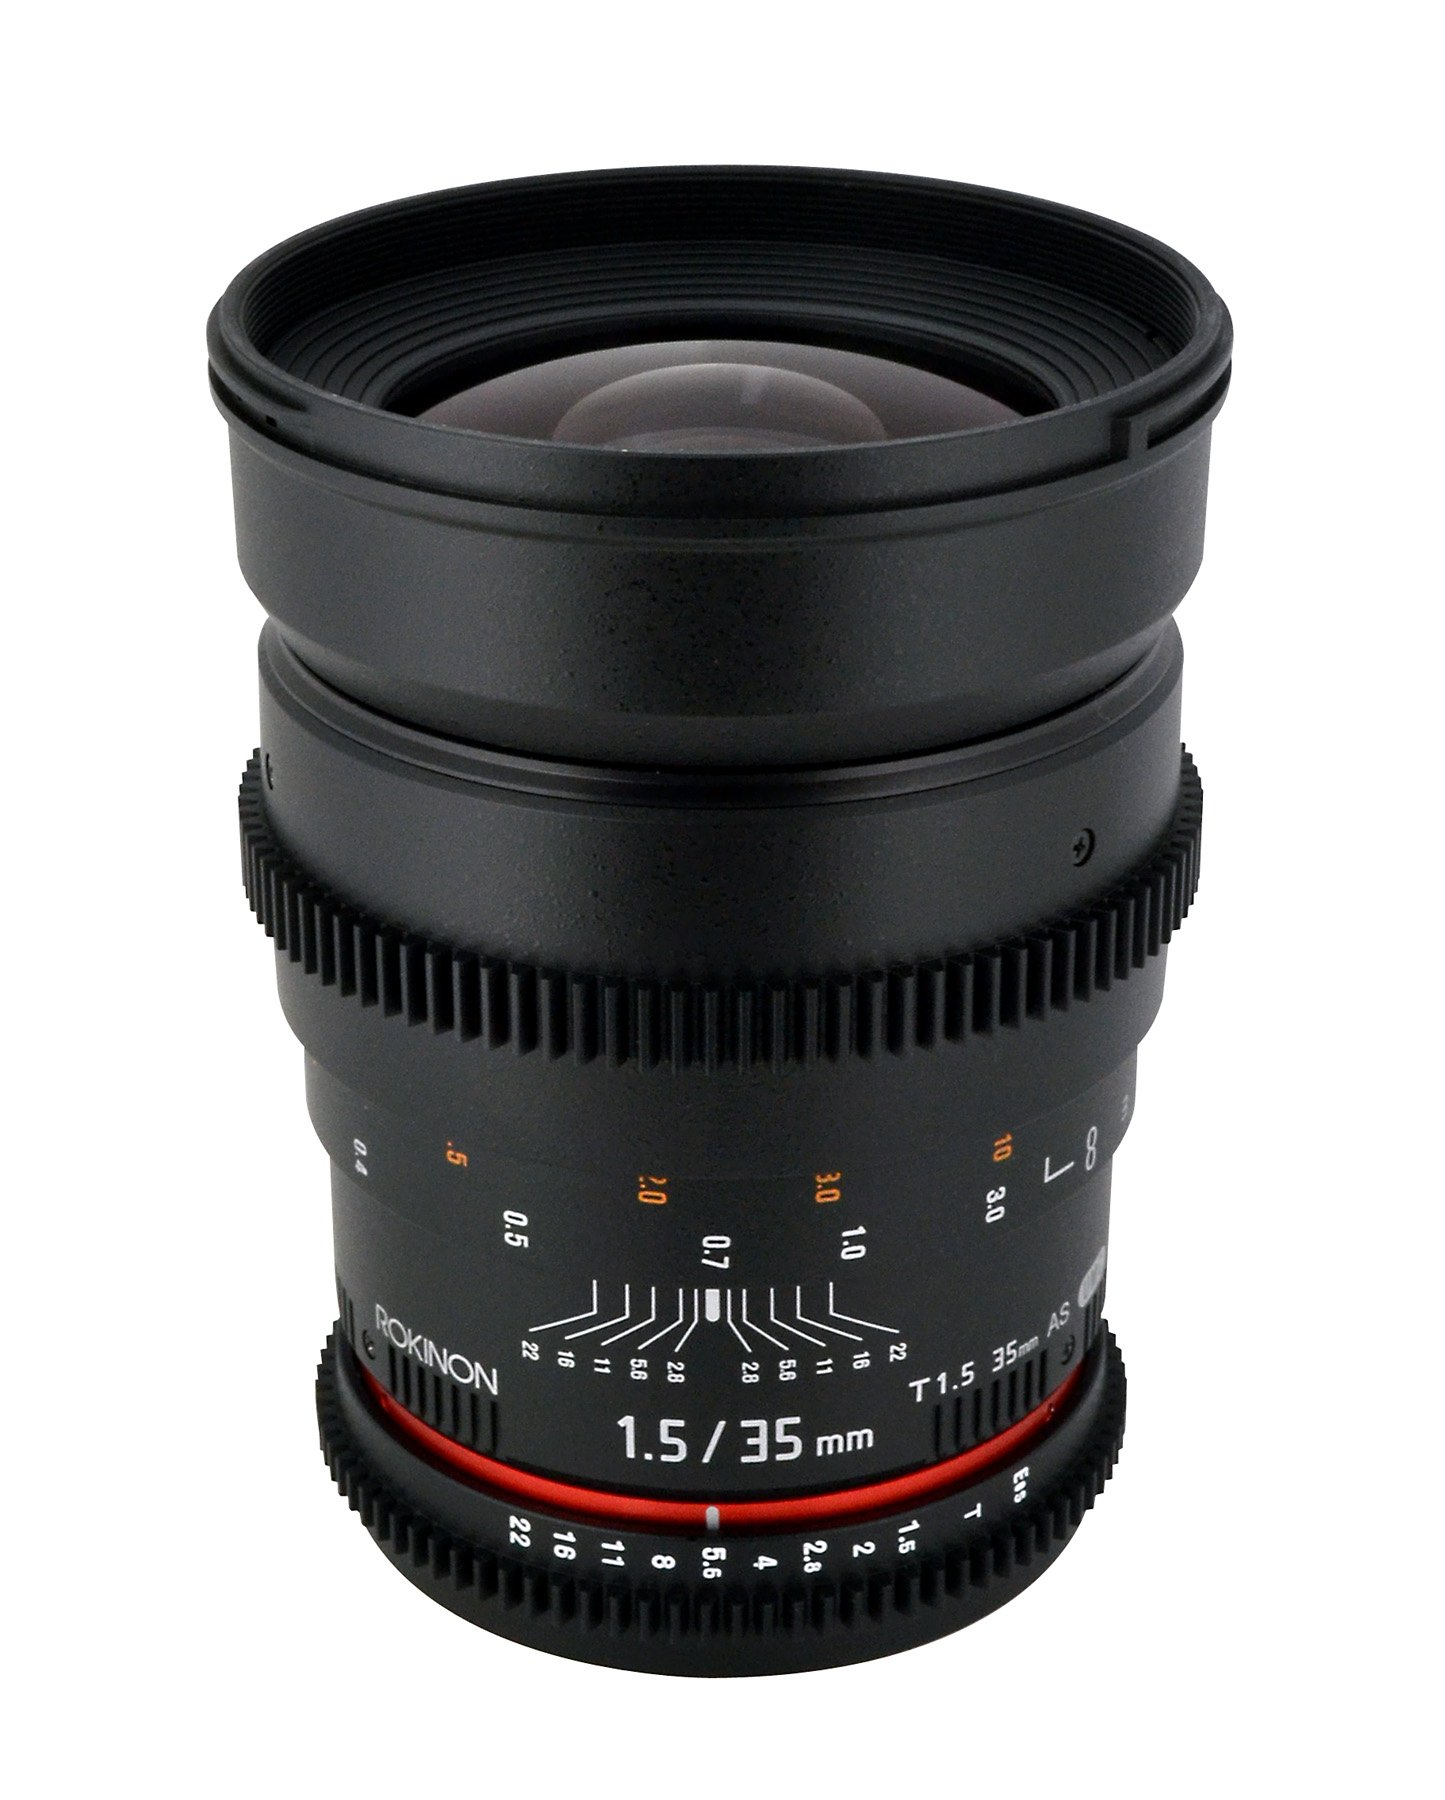 Rokinon Cine CV35-C 35mm T1.5 Aspherical Wide Angle Cine Lens with De-Clicked Aperture for Canon EOS DSLR 35-35mm, Fixed-Non-Zoom Lens by Rokinon (Image #1)